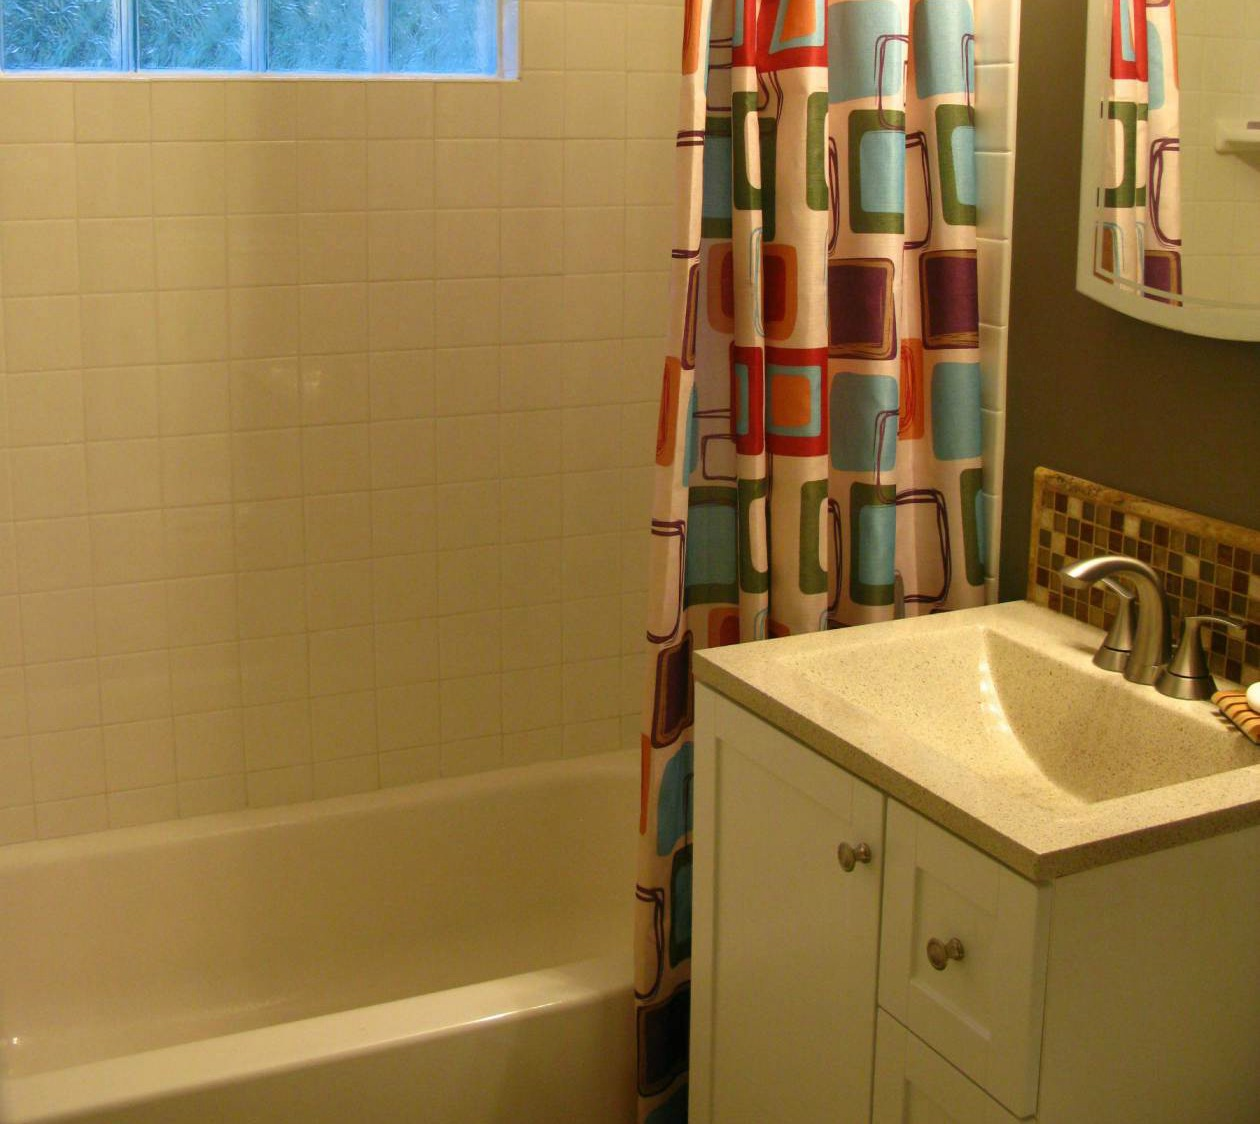 How To Start A Bathroom Remodel Adorable Bathroom Remodel From Start To Finish Design Decoration